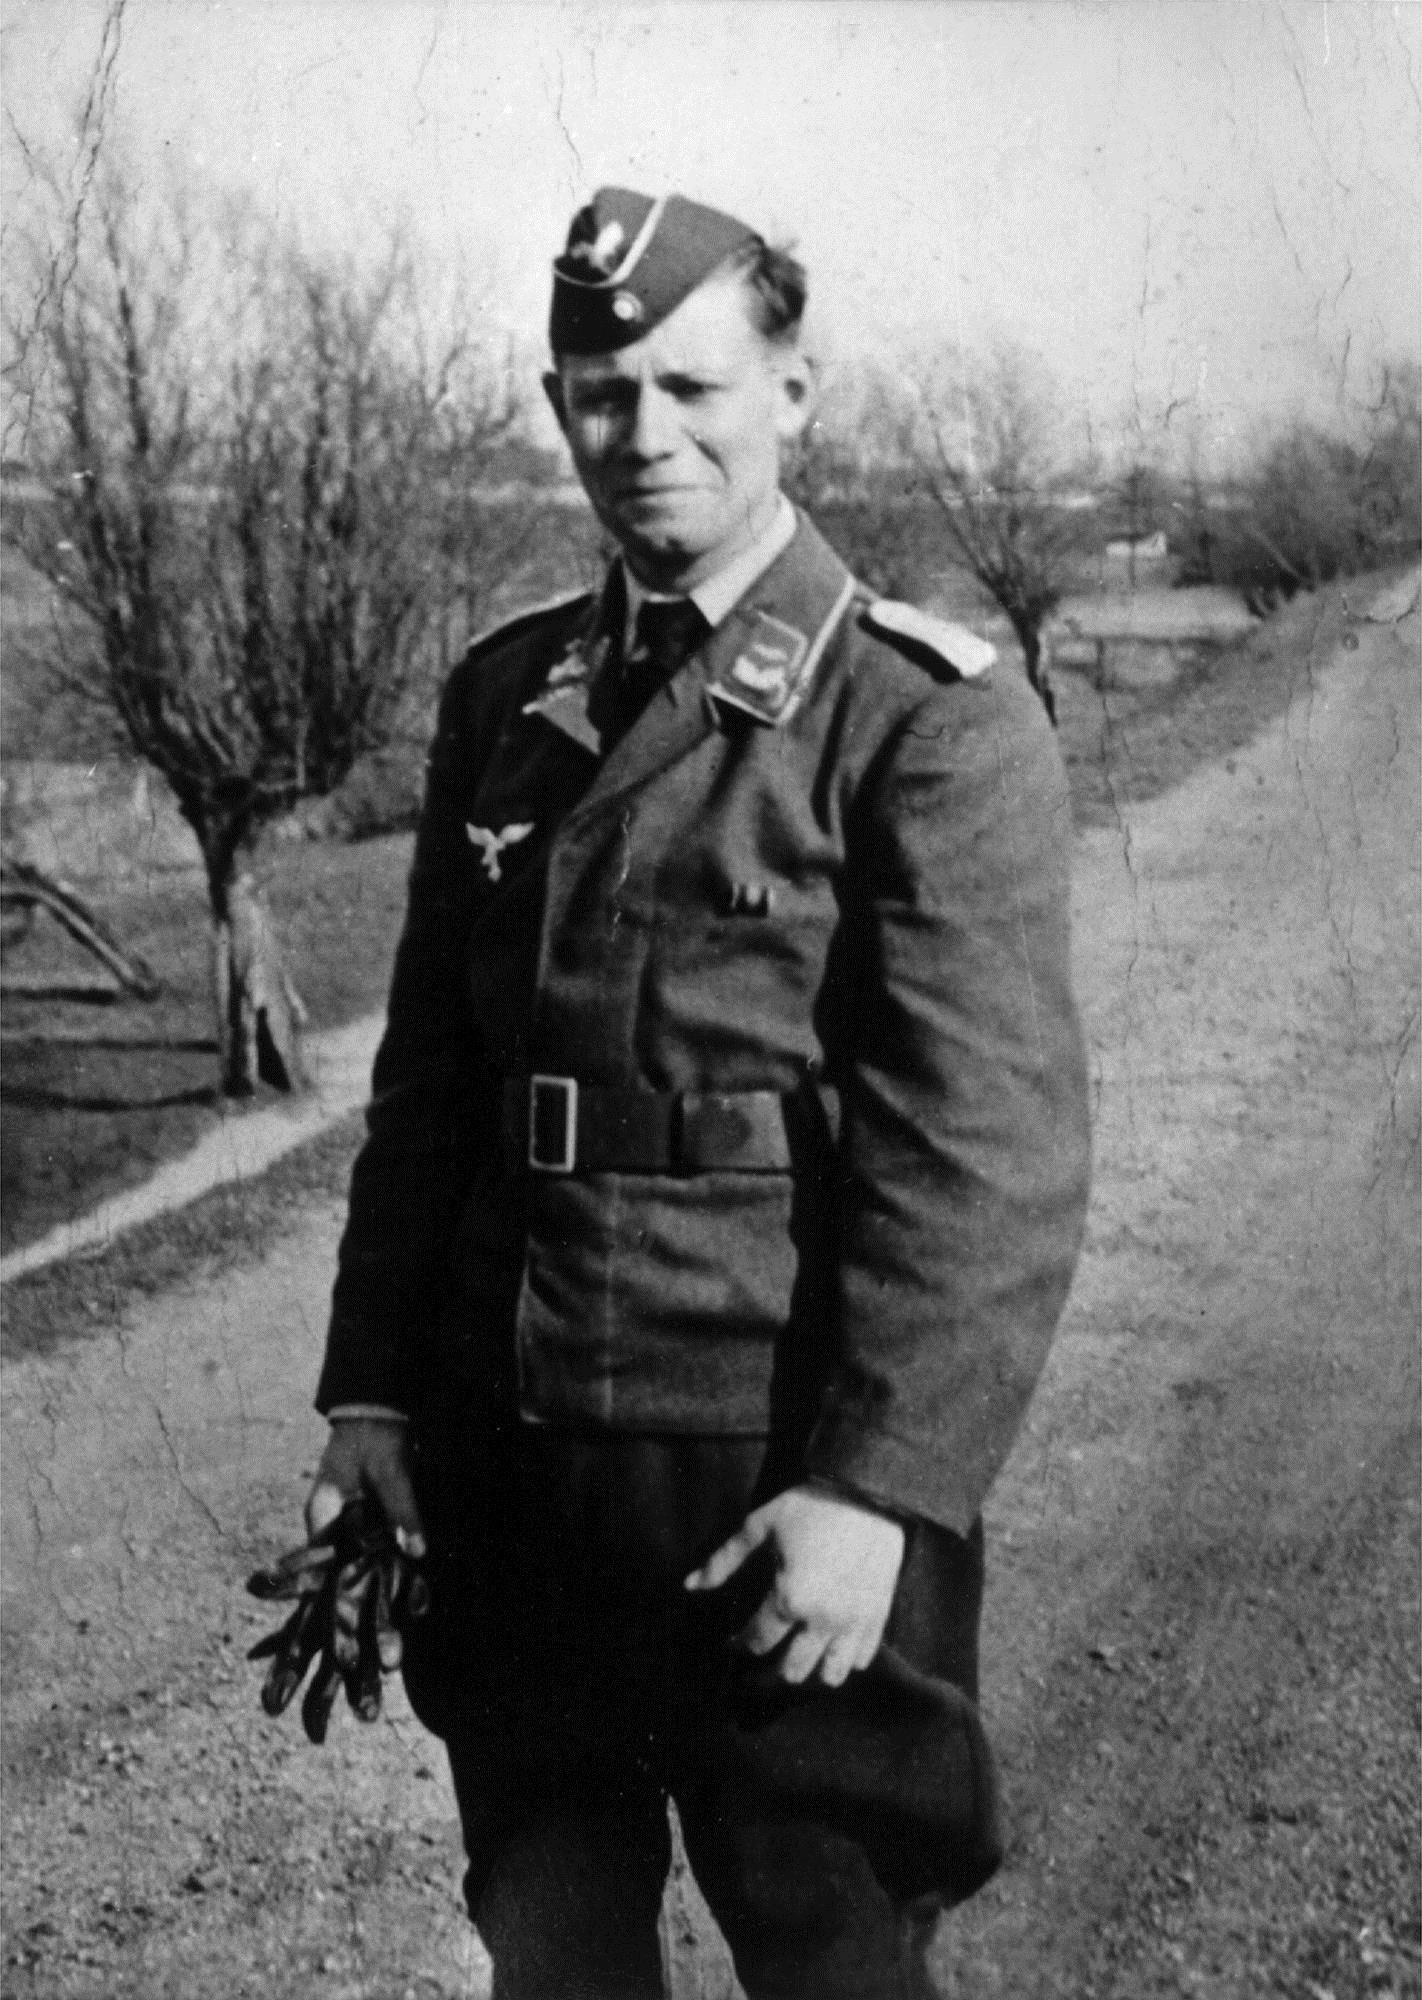 Day reenactment ww ii pictures pinterest -  Chancellor Helmut Schmidt When He Was A Second Lieutenant Of The Air Force Of The Deutsche Wehrmacht During The World War Ii At An Unknown Location